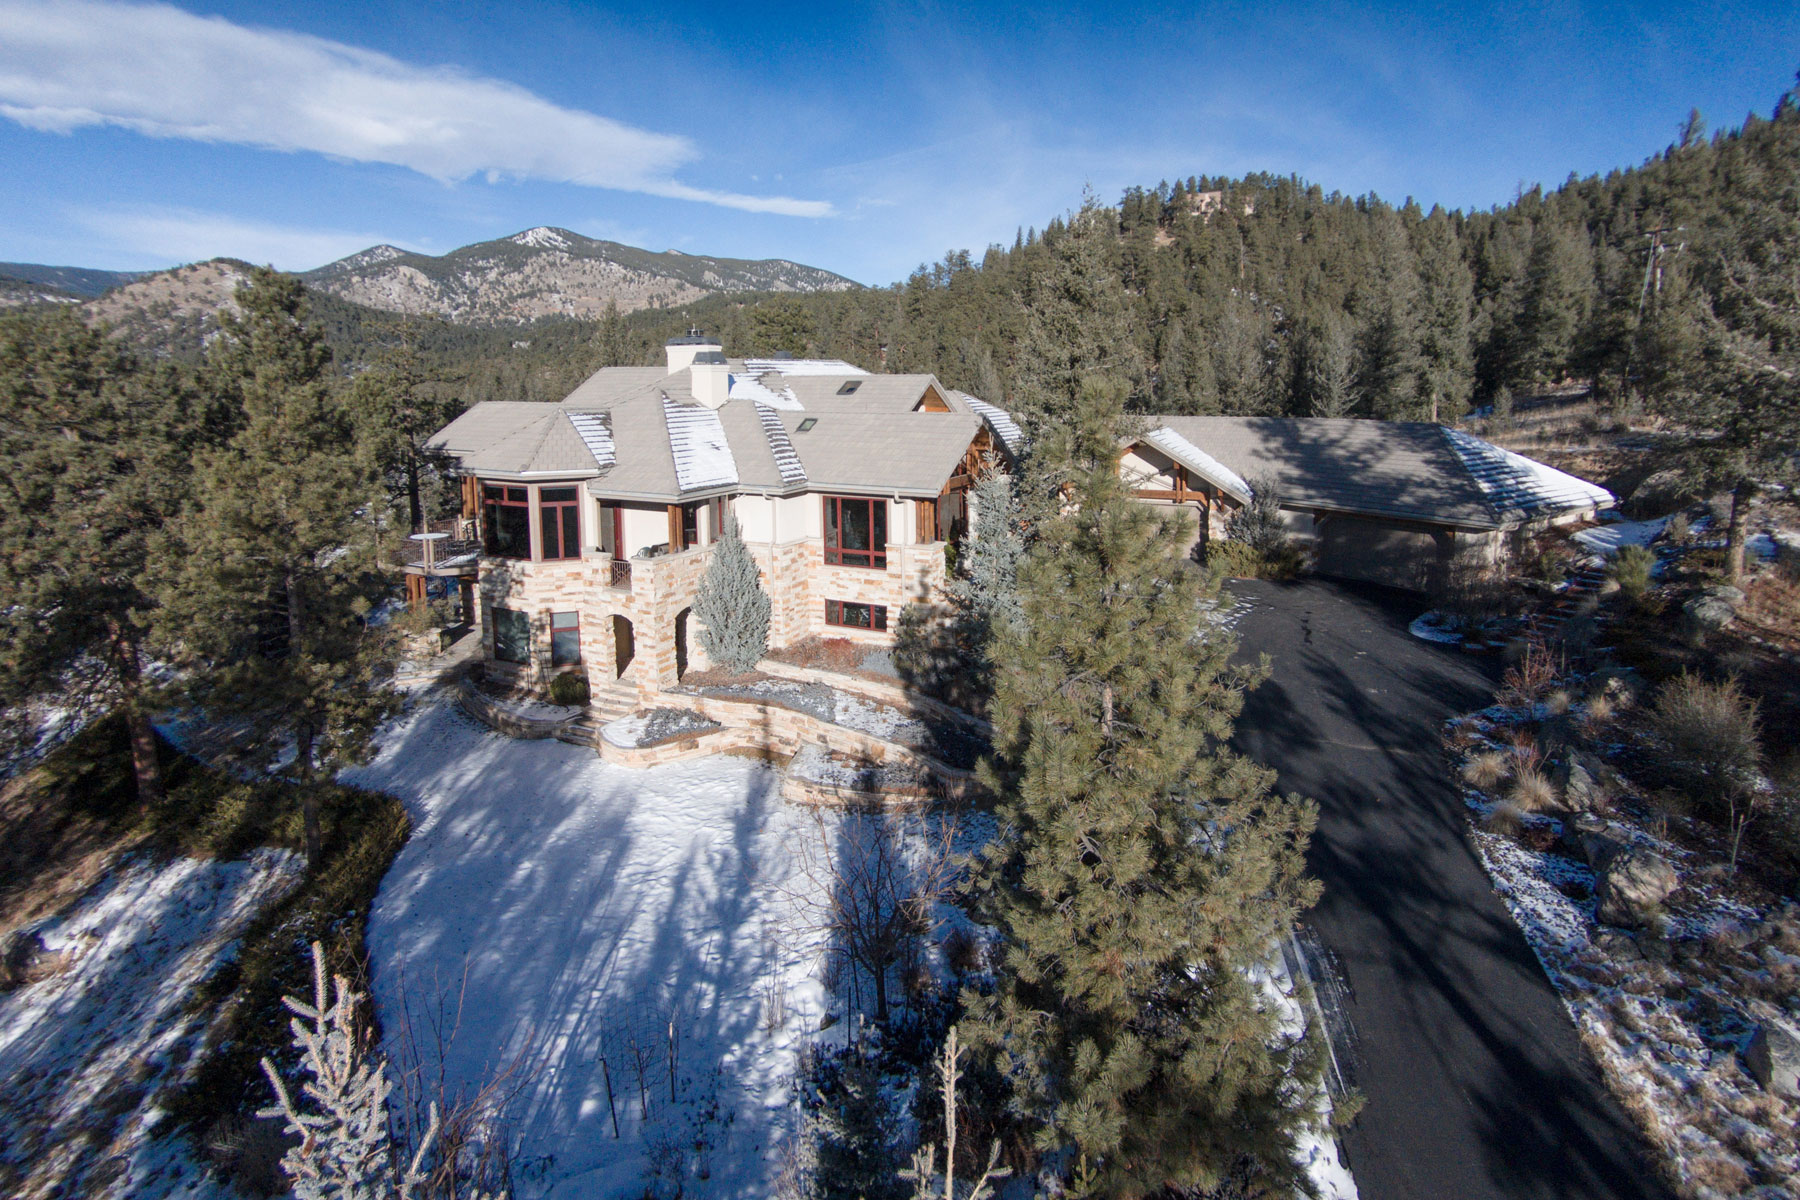 Single Family Home for Sale at The Wildflower Wonder 4128 Wildflower Court Evergreen, Colorado 80439 United States